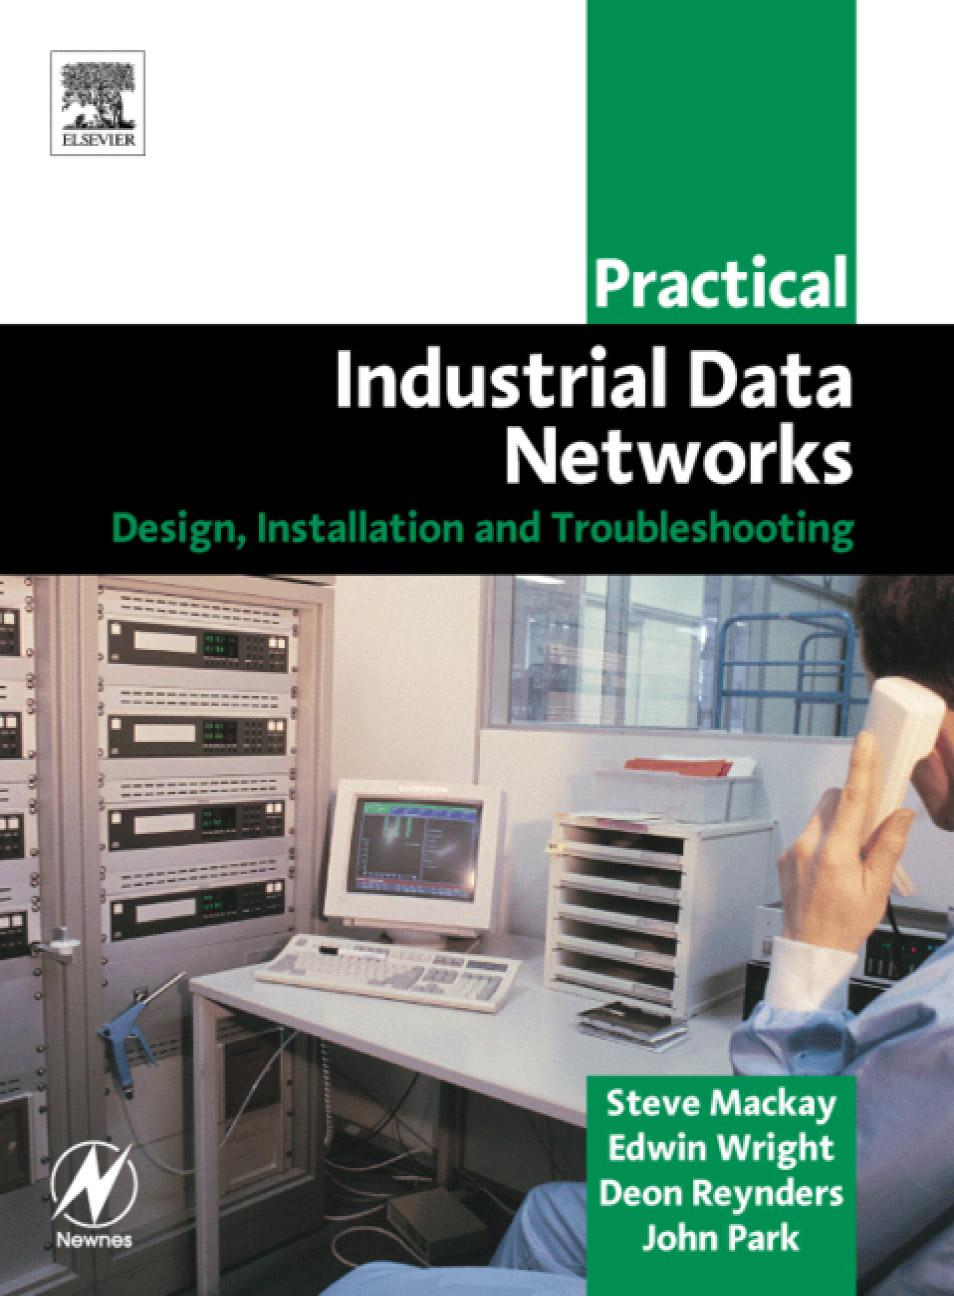 Practical Industrial Data Networks: Design, Installation and Troubleshooting